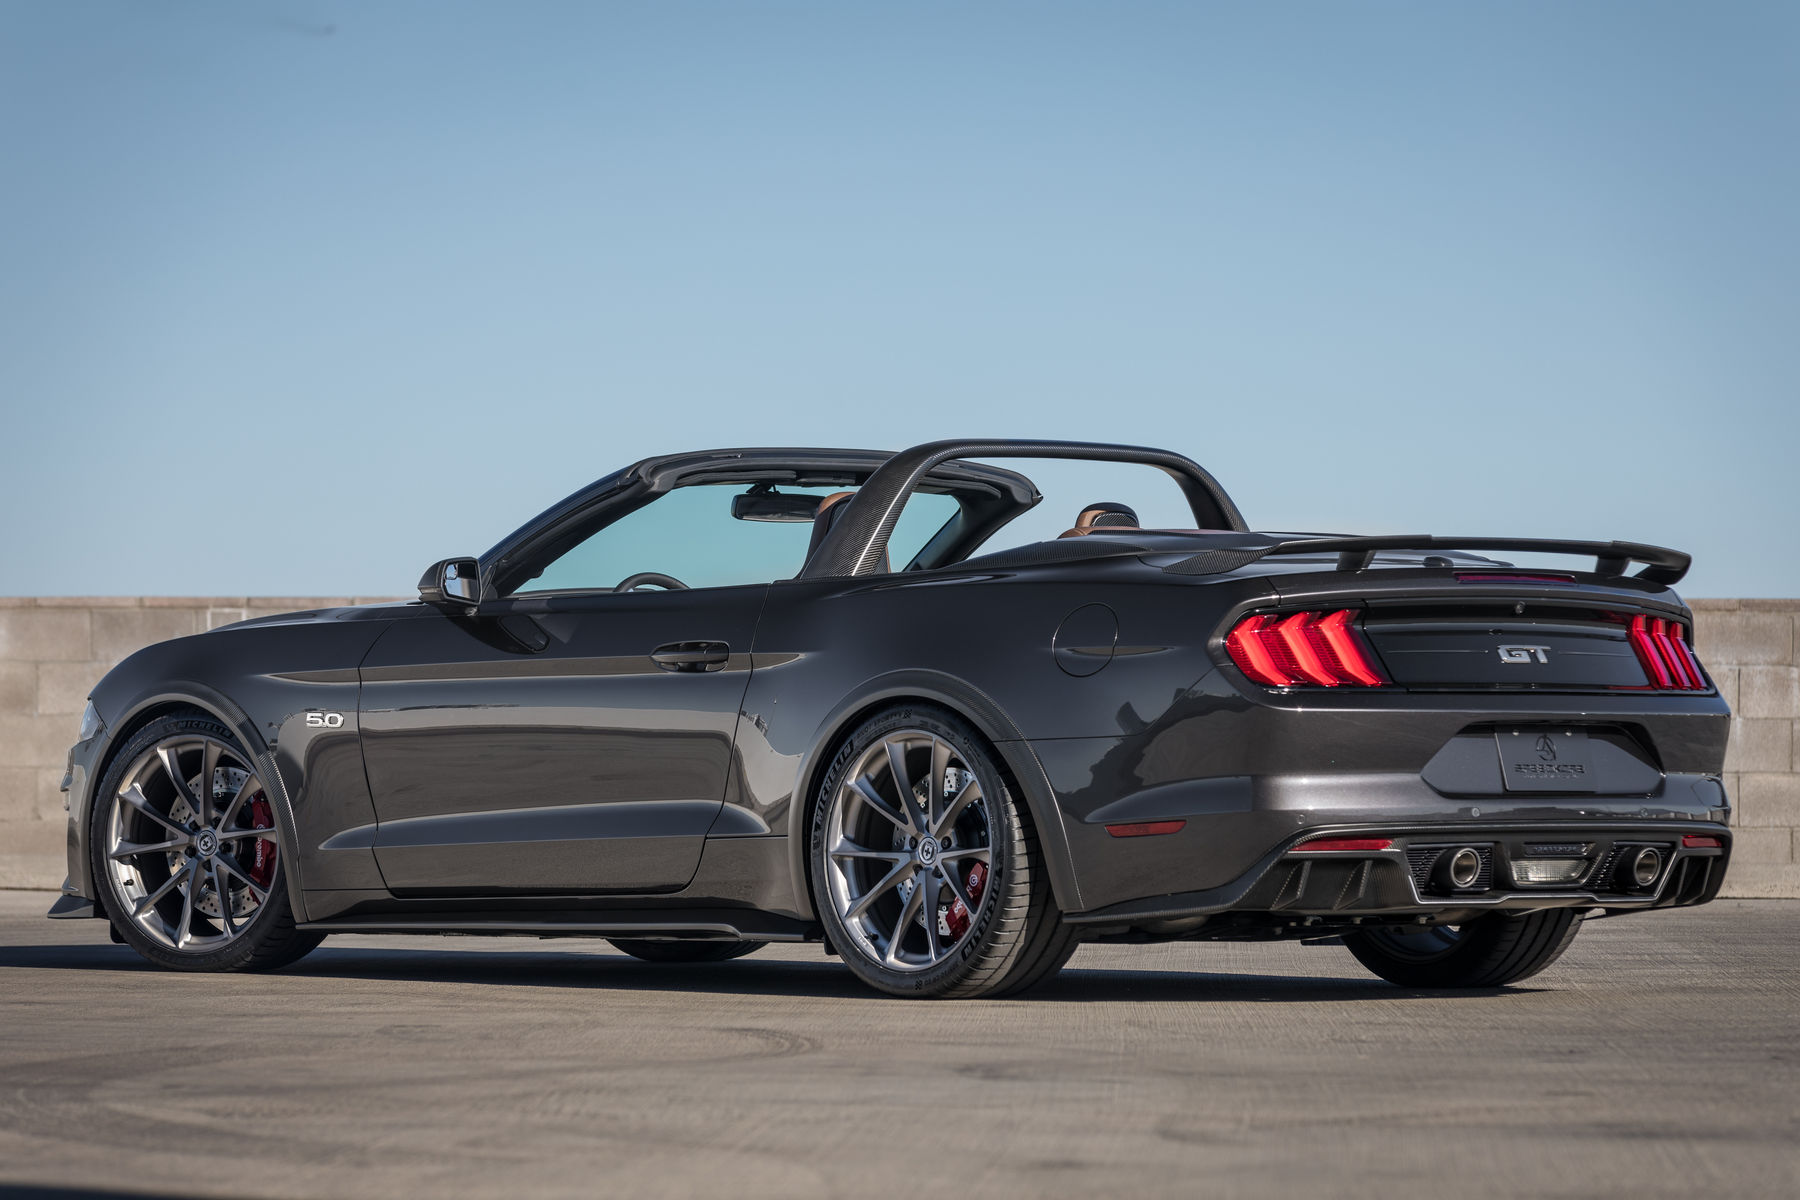 2018 ford mustang gt convertible by speedkore performance group fordsema. Black Bedroom Furniture Sets. Home Design Ideas